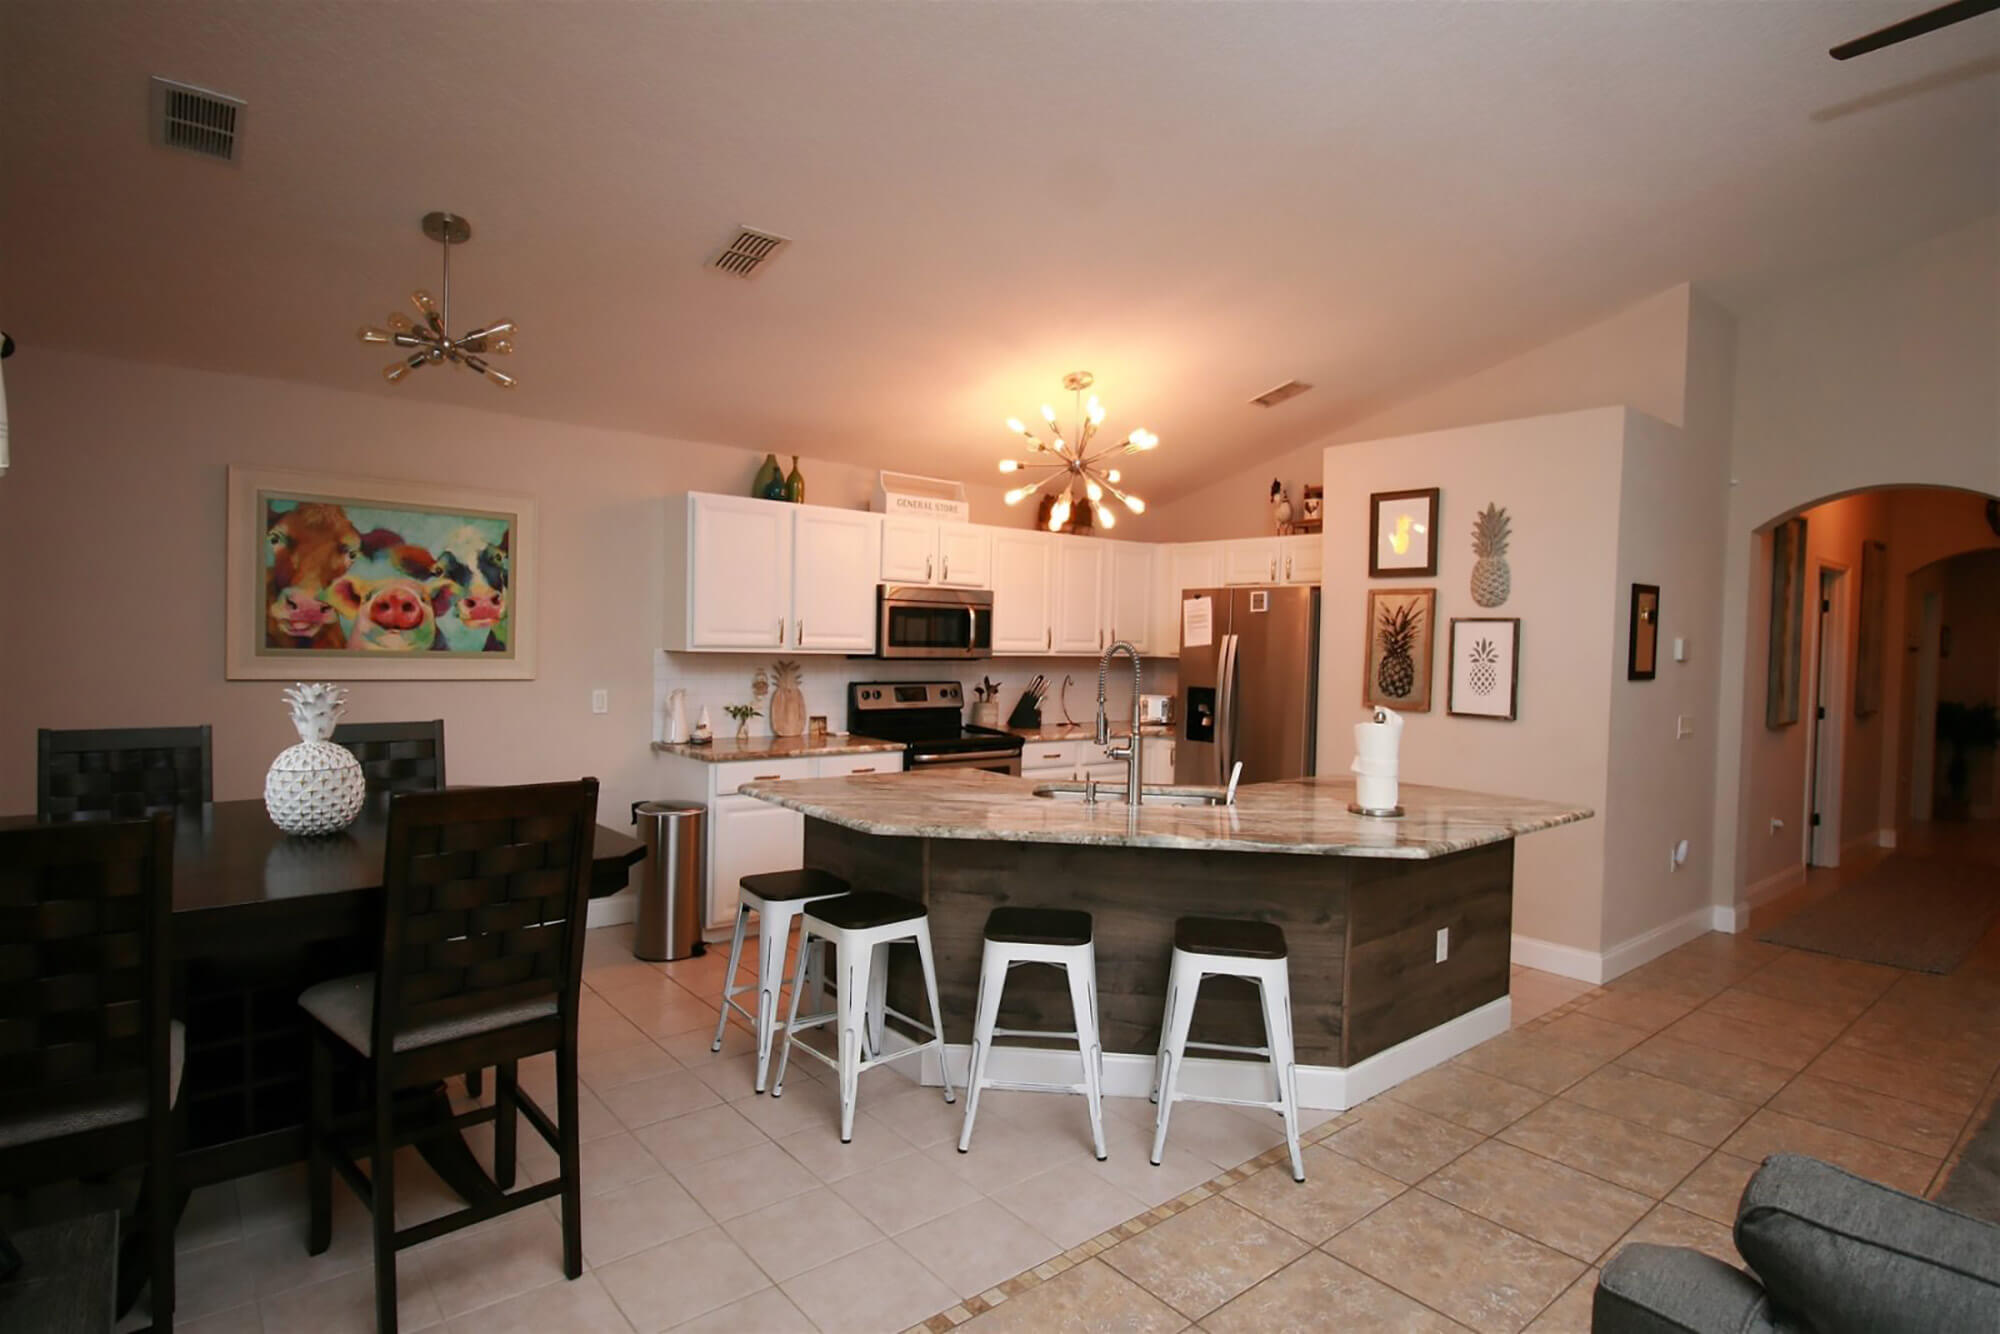 kitchen and dining area of Southern Dream Vacation Rentals home